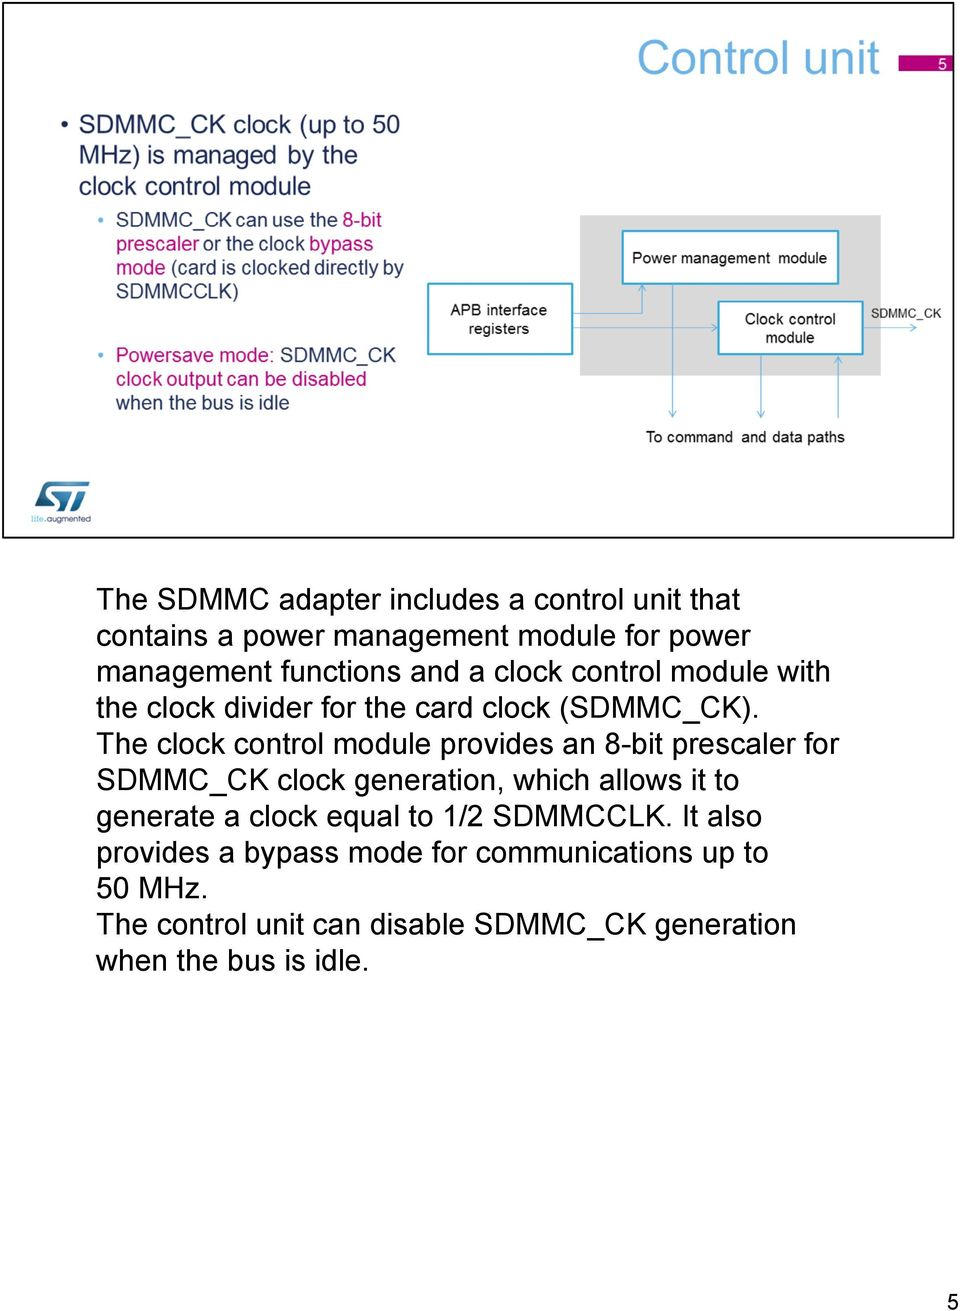 The clock control module provides an 8-bit prescaler for SDMMC_CK clock generation, which allows it to generate a